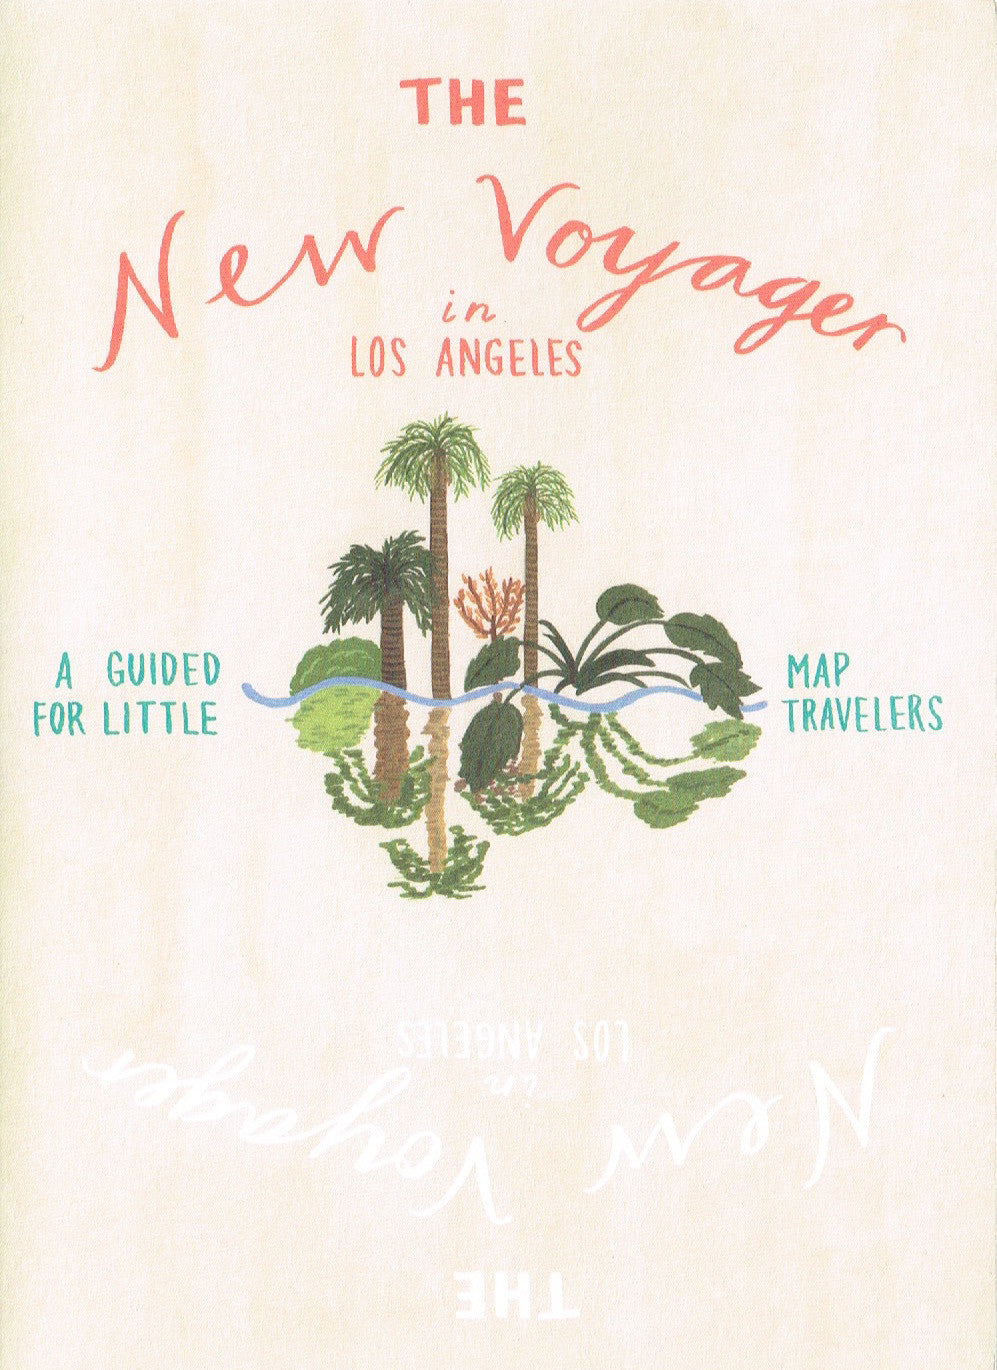 THE NEW VOYAGER IN LOS ANGELES - SÉRENDIPITÉ